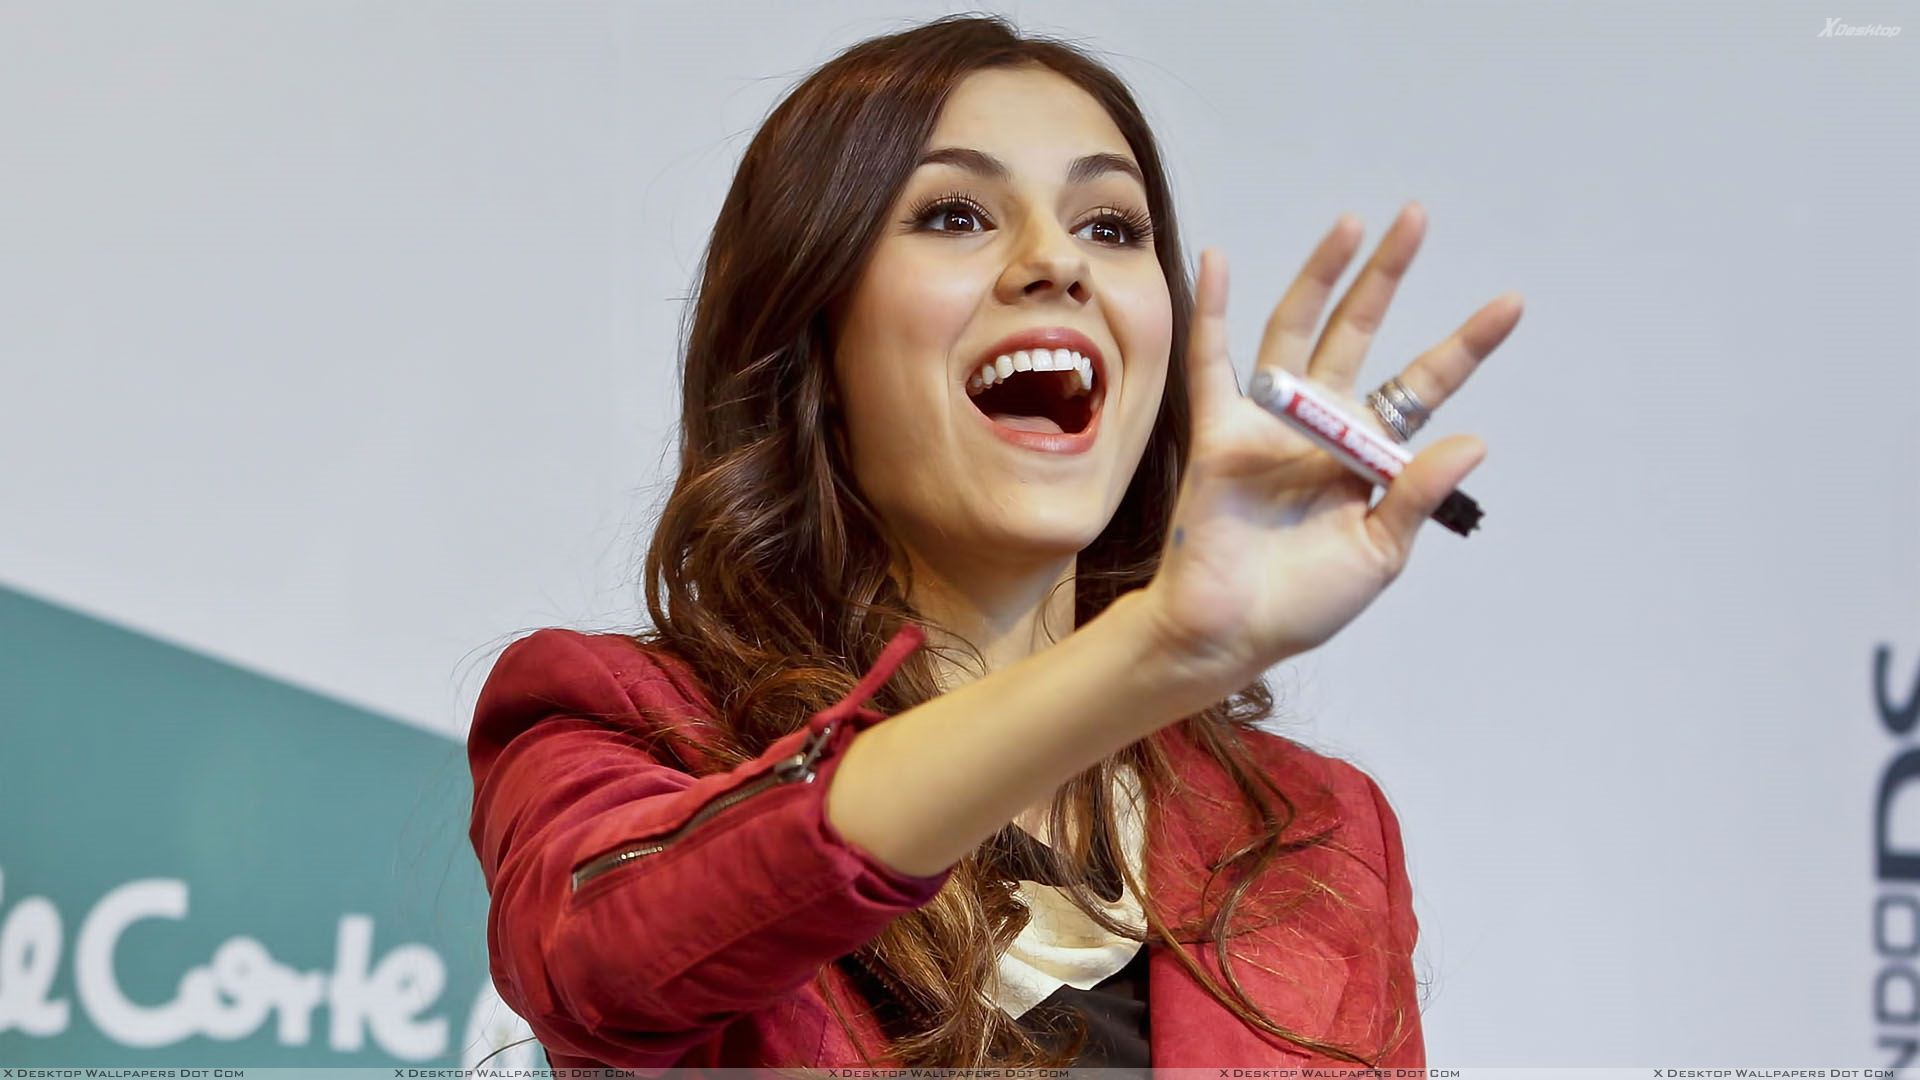 You Are Viewing Wallpaper Titled Victoria Justice Open Mouth Photoshoot